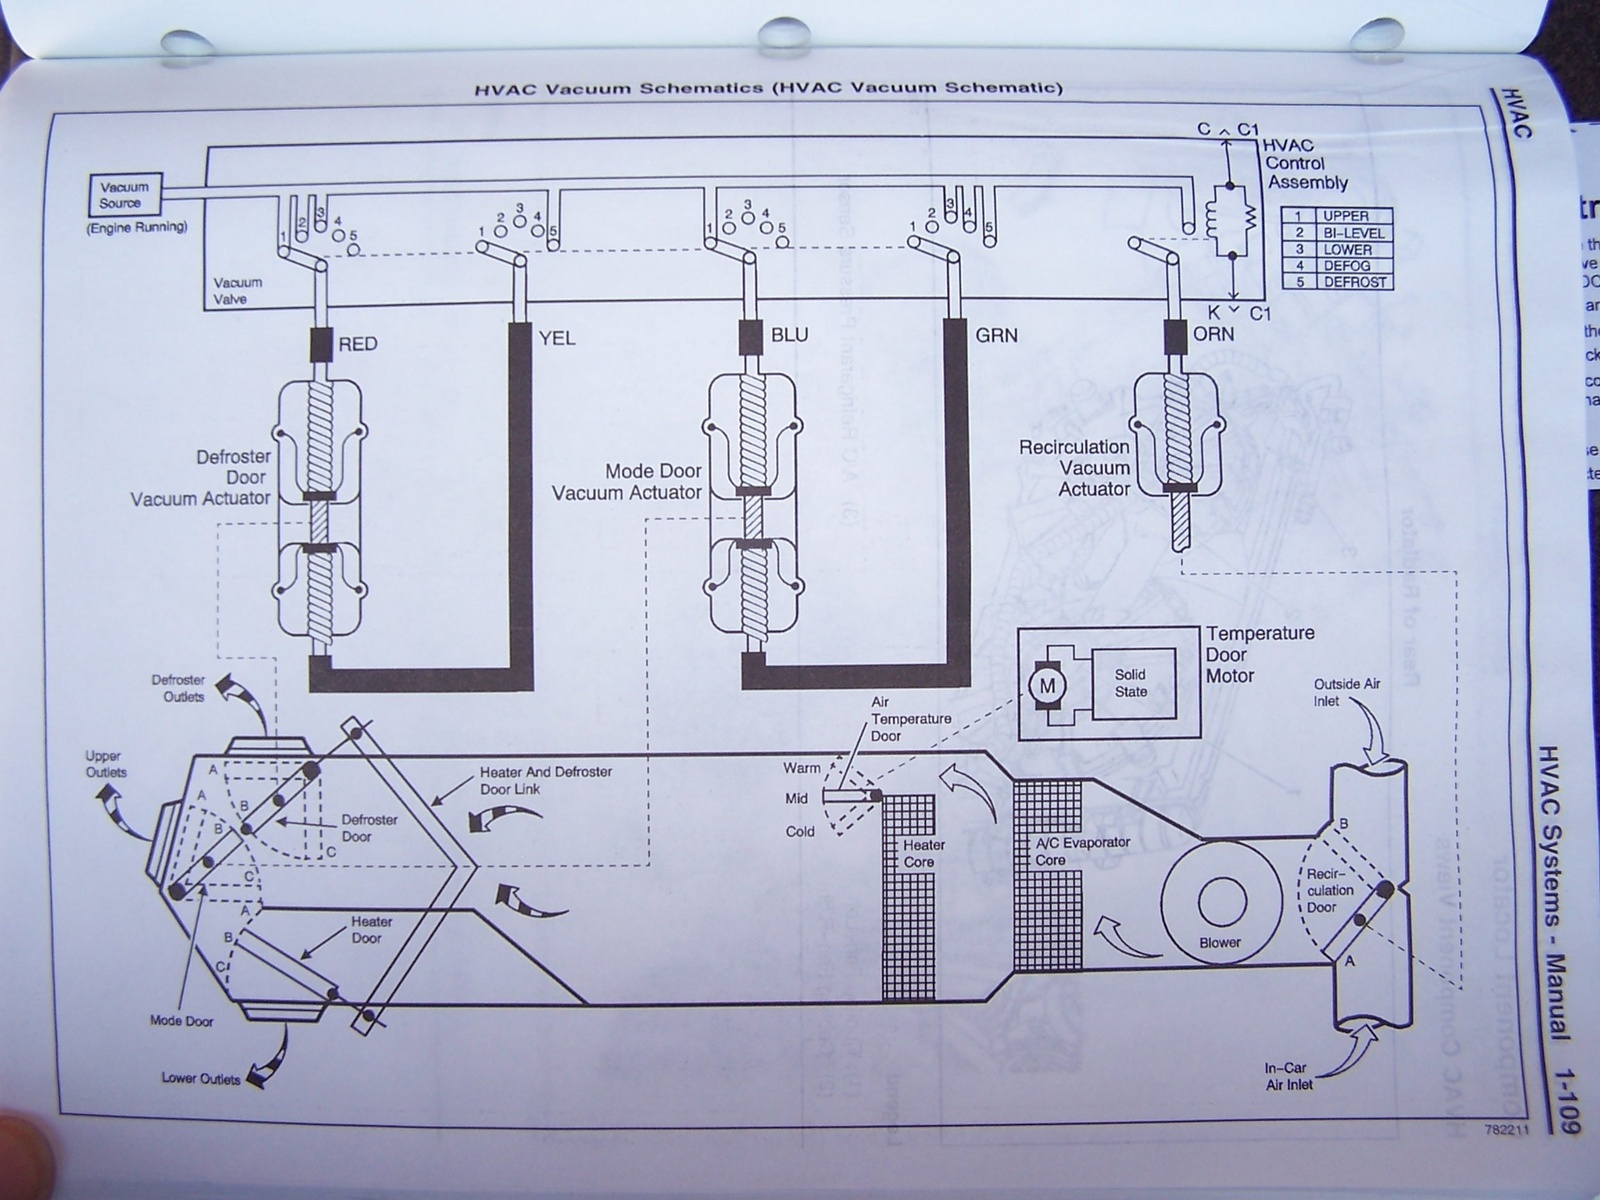 2003 Trailblazer Cooling System Diagram Reinvent Your Wiring Diagrams For Cars Chevrolet Blazer Questions My Heater Stopped Blowing Hot Air Rh Cargurus Com Engine Gm V6